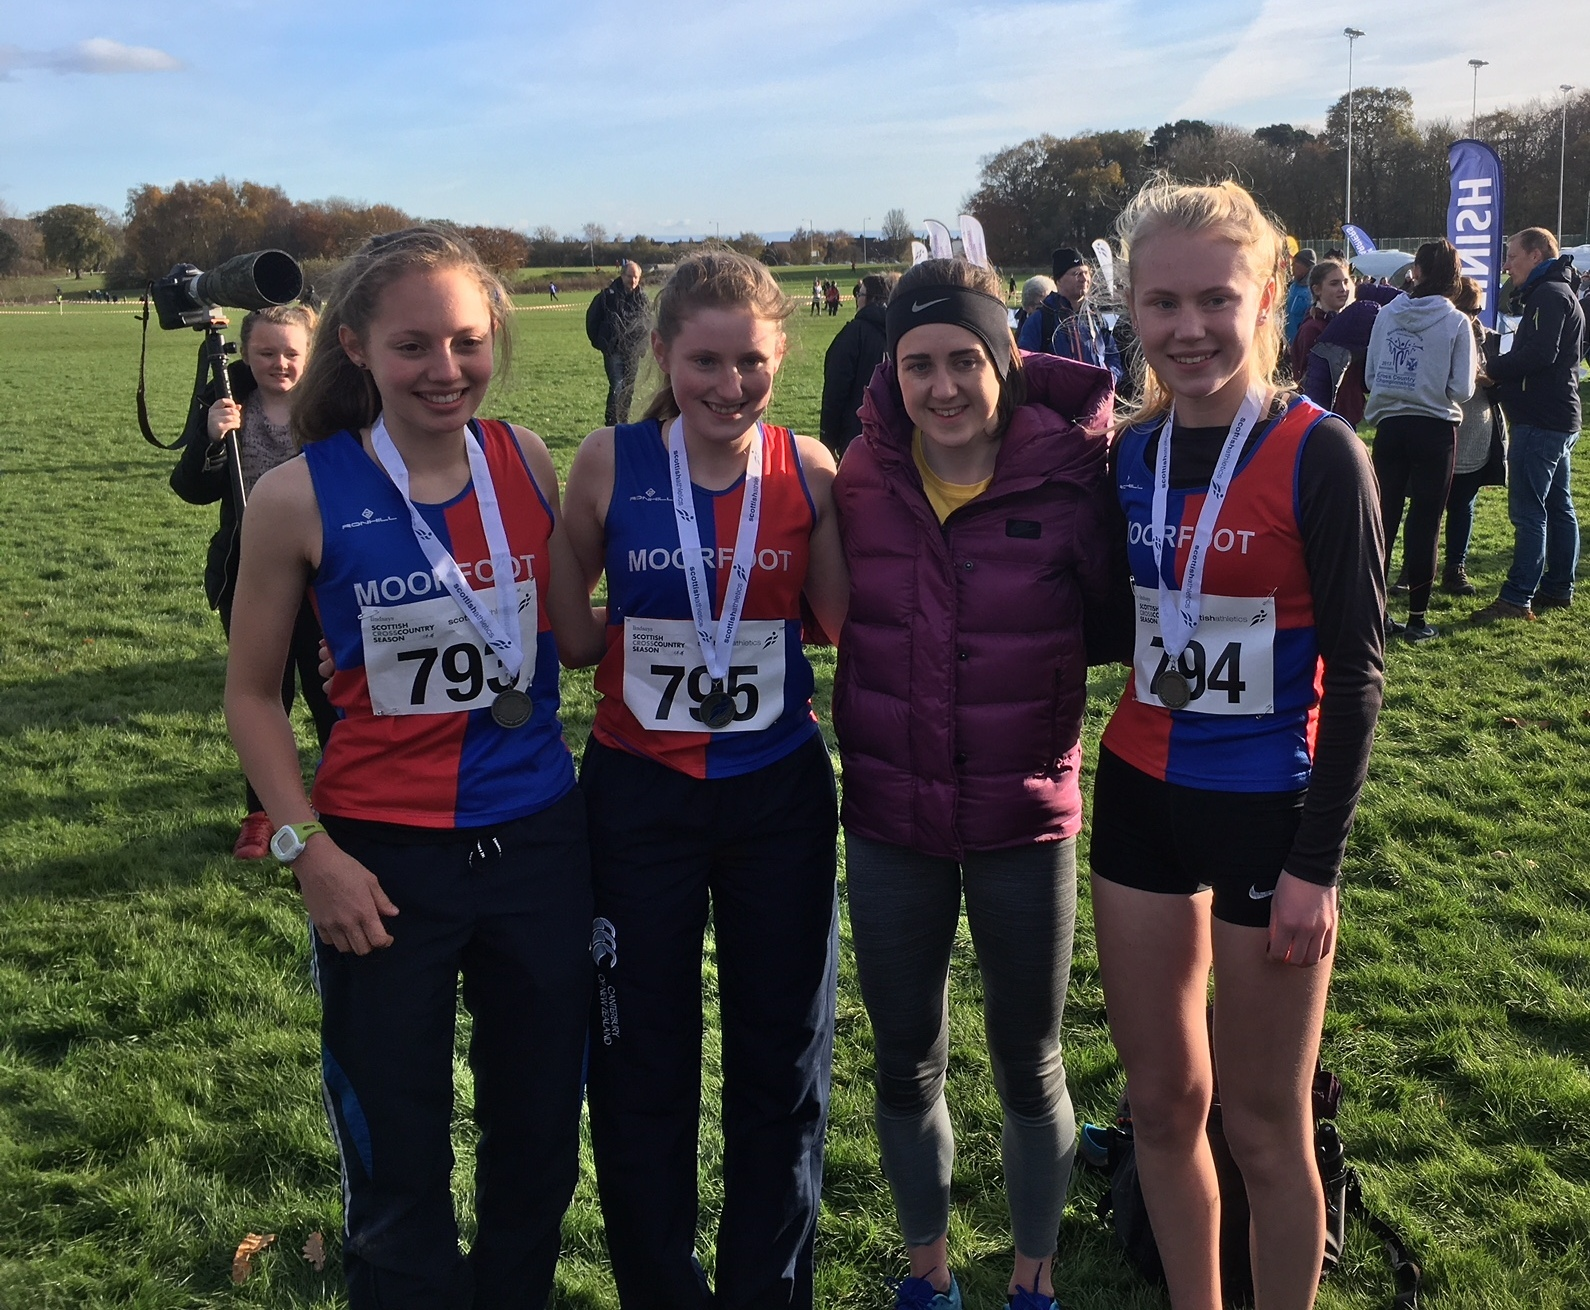 Laura Muir congratulates the Moorfoot girls